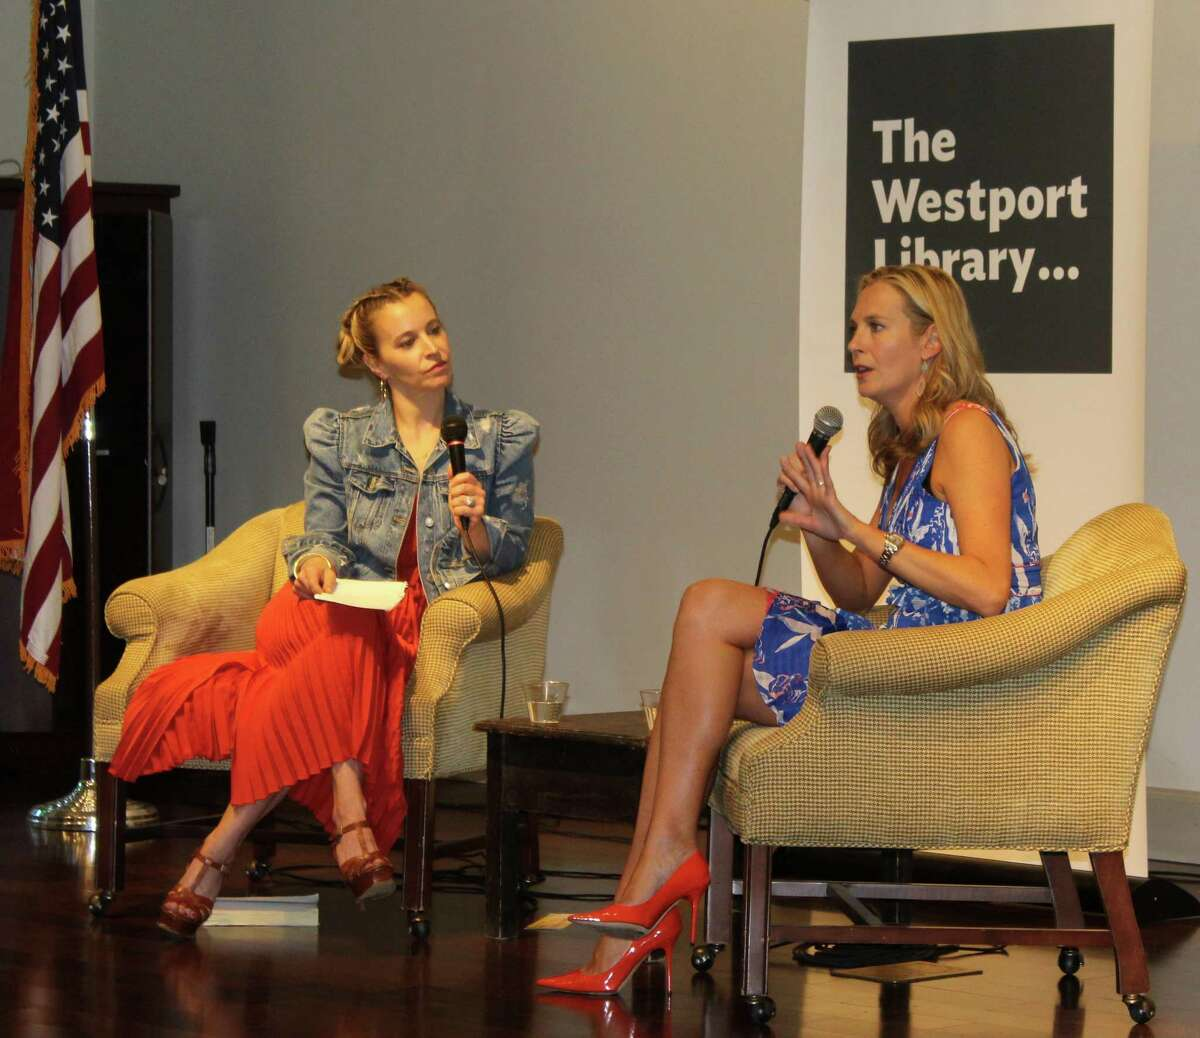 Westport resident and TV style icon Jenn Falik (left) hosted a conversation with fellow town resident, author Lauren Weisberger, about her new bookm,